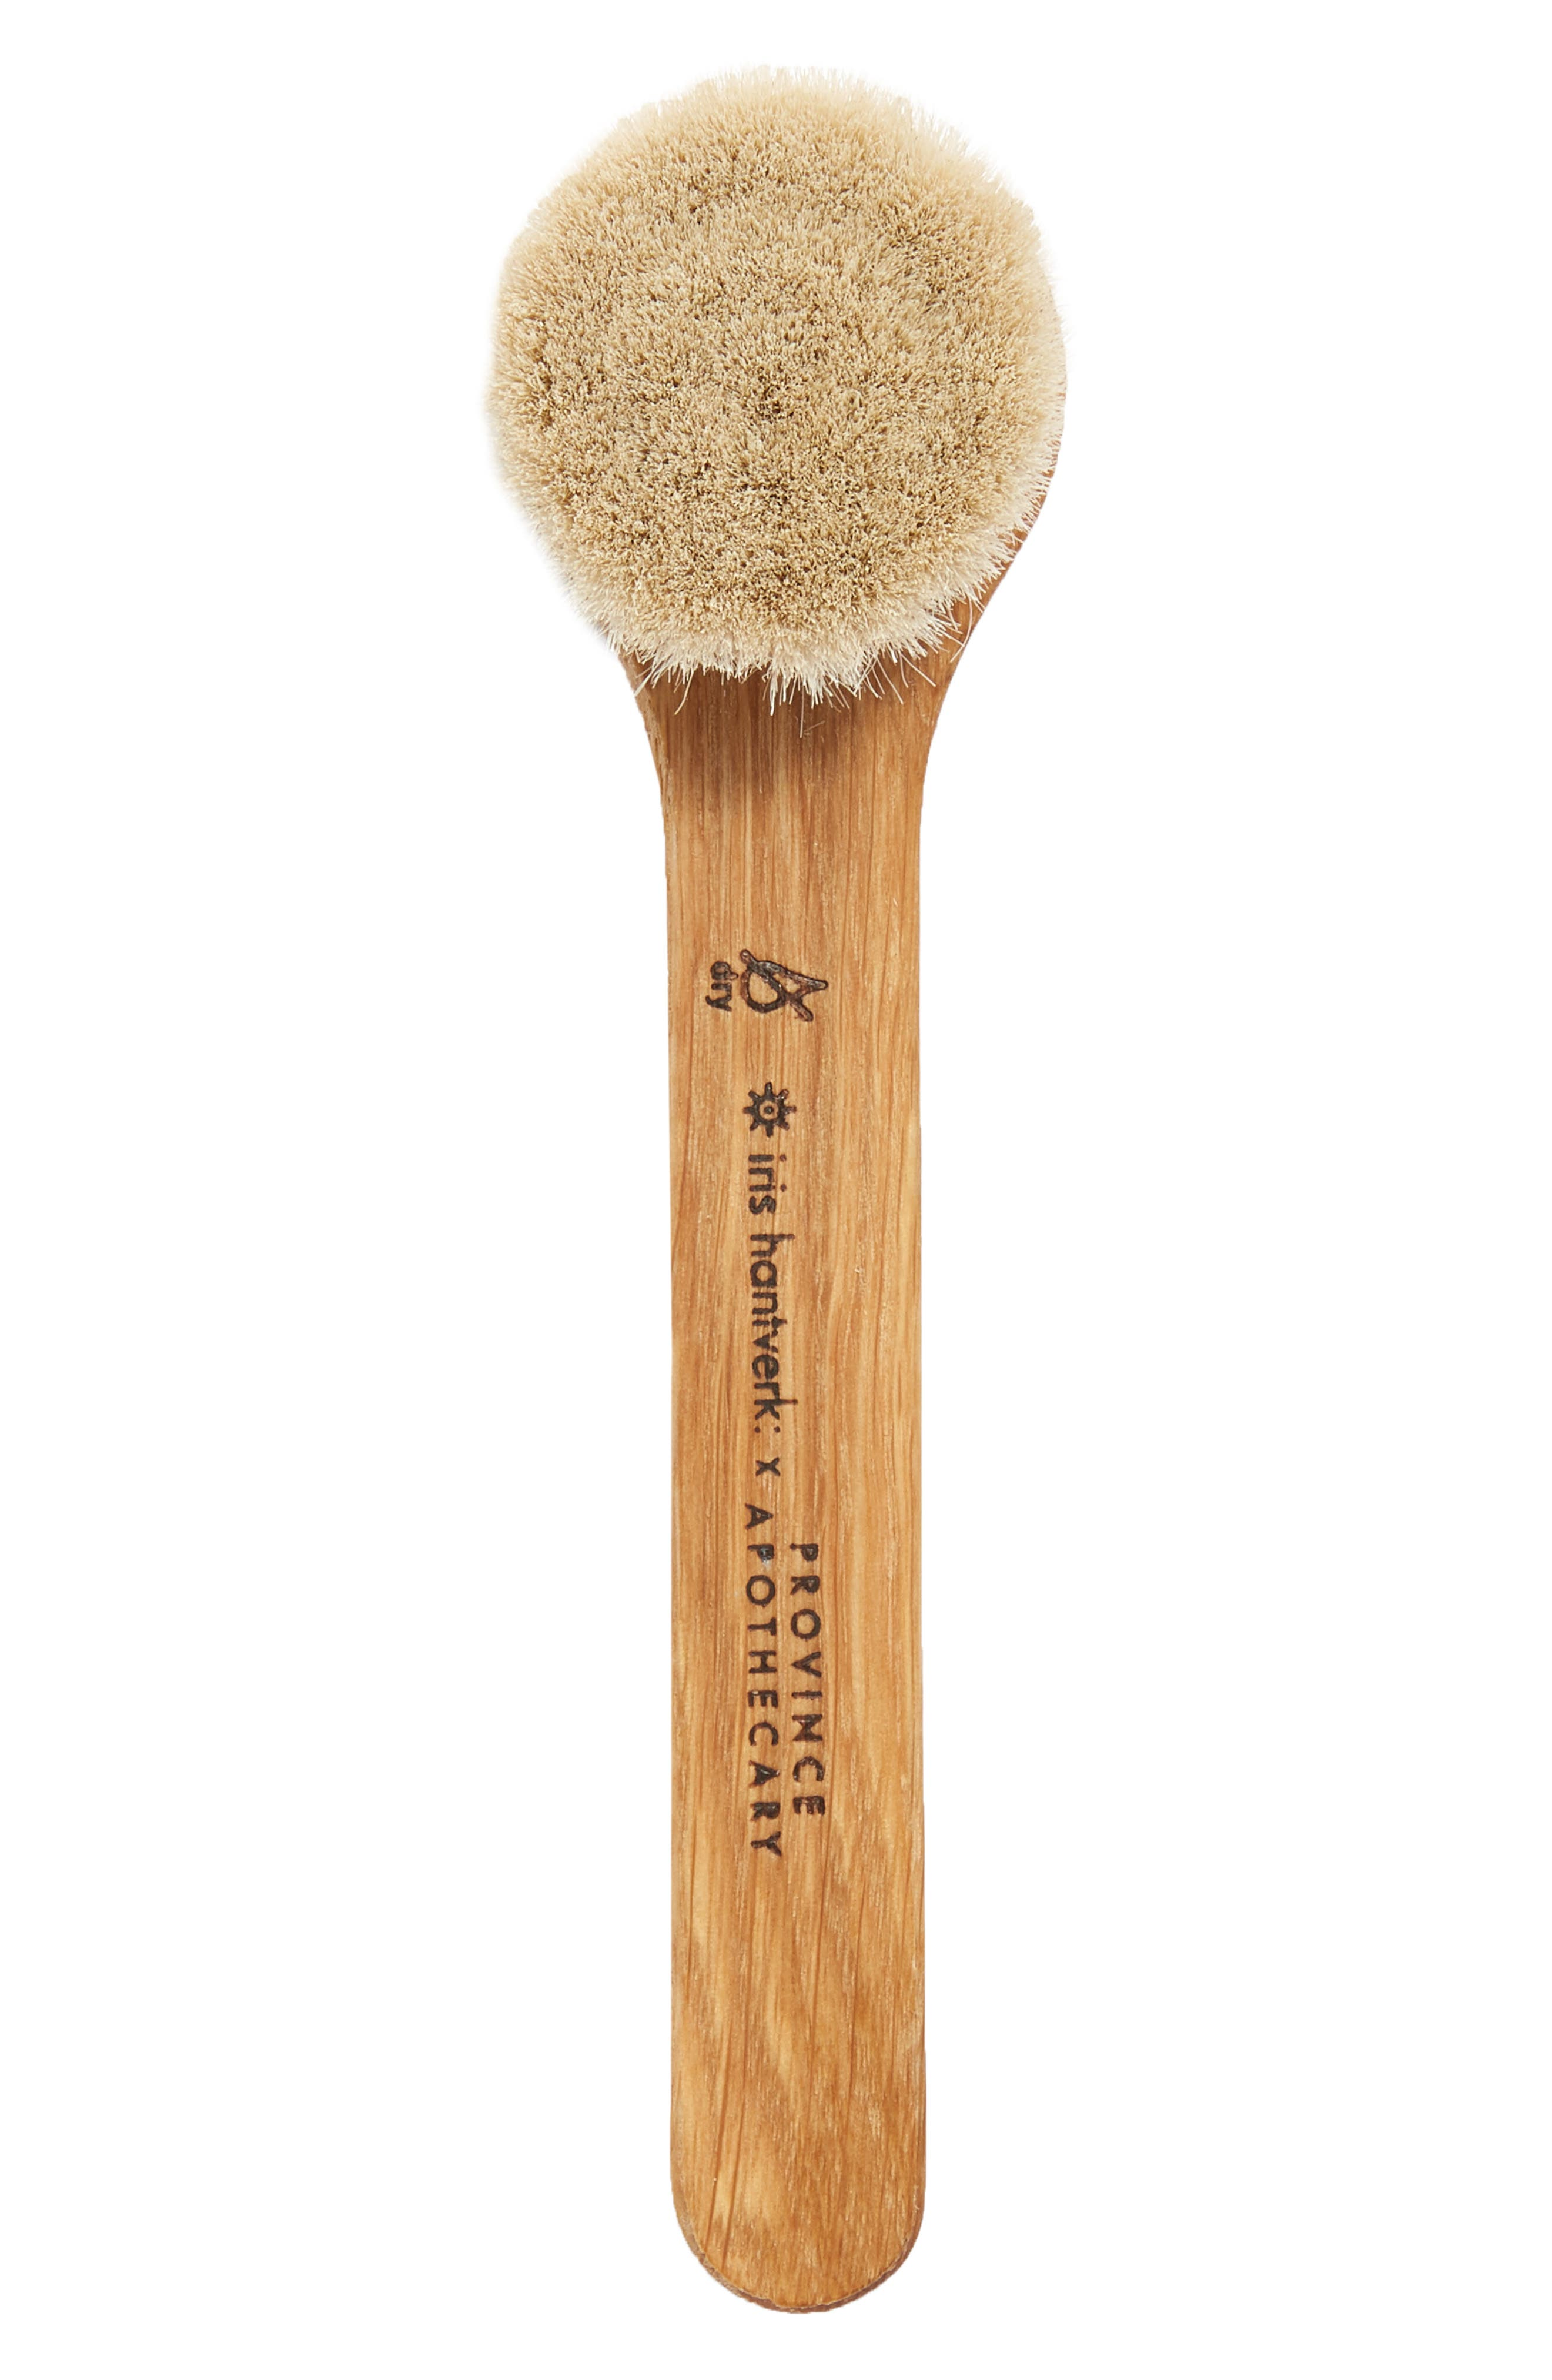 PROVINCE APOTHECARY, Daily Glow Facial Dry Brush, Main thumbnail 1, color, 200